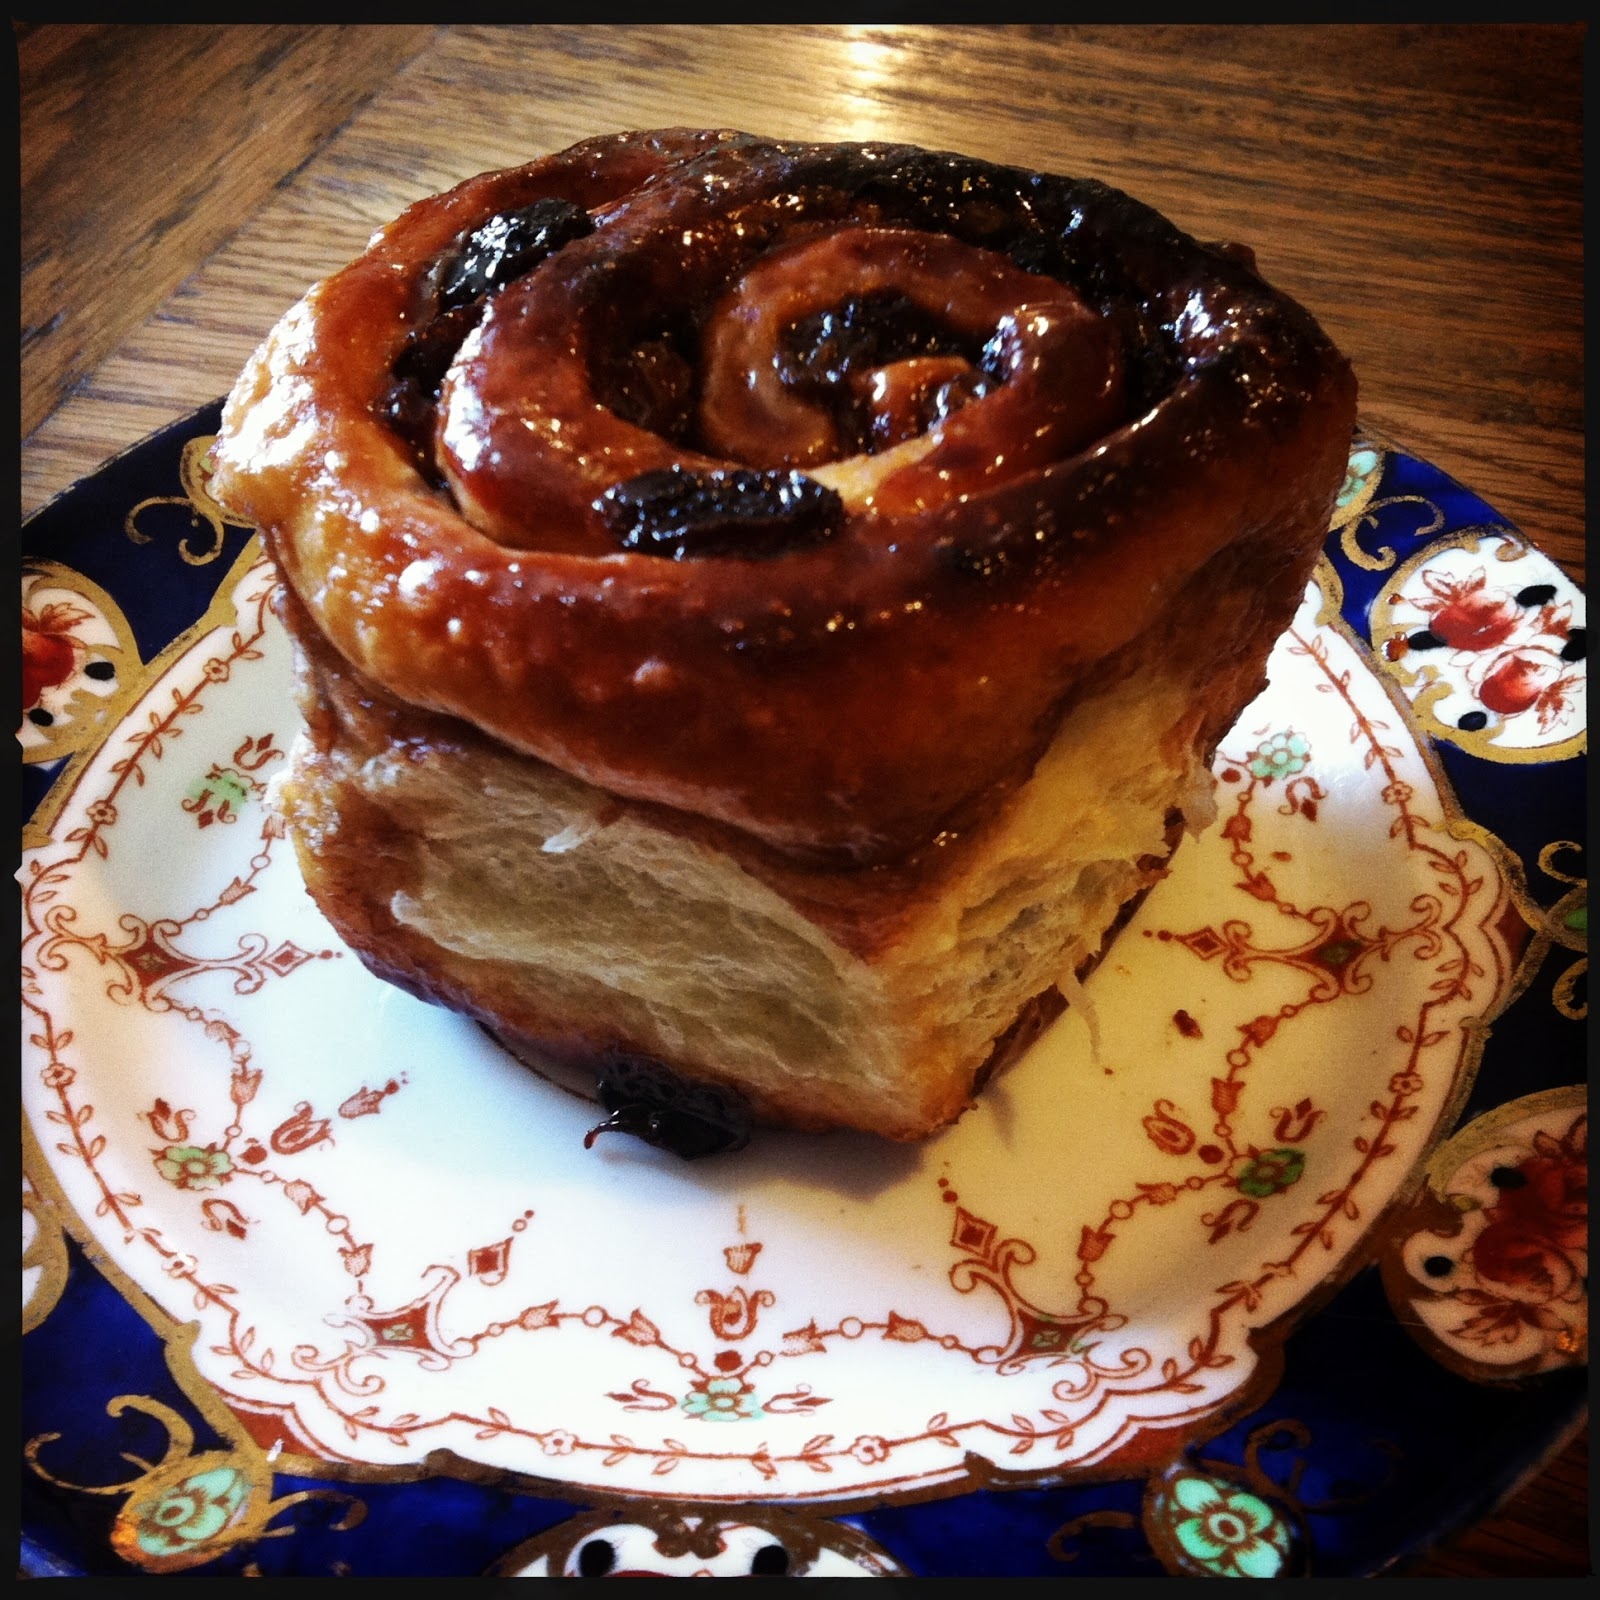 The Vicar Died Laughing: Chelsea Buns